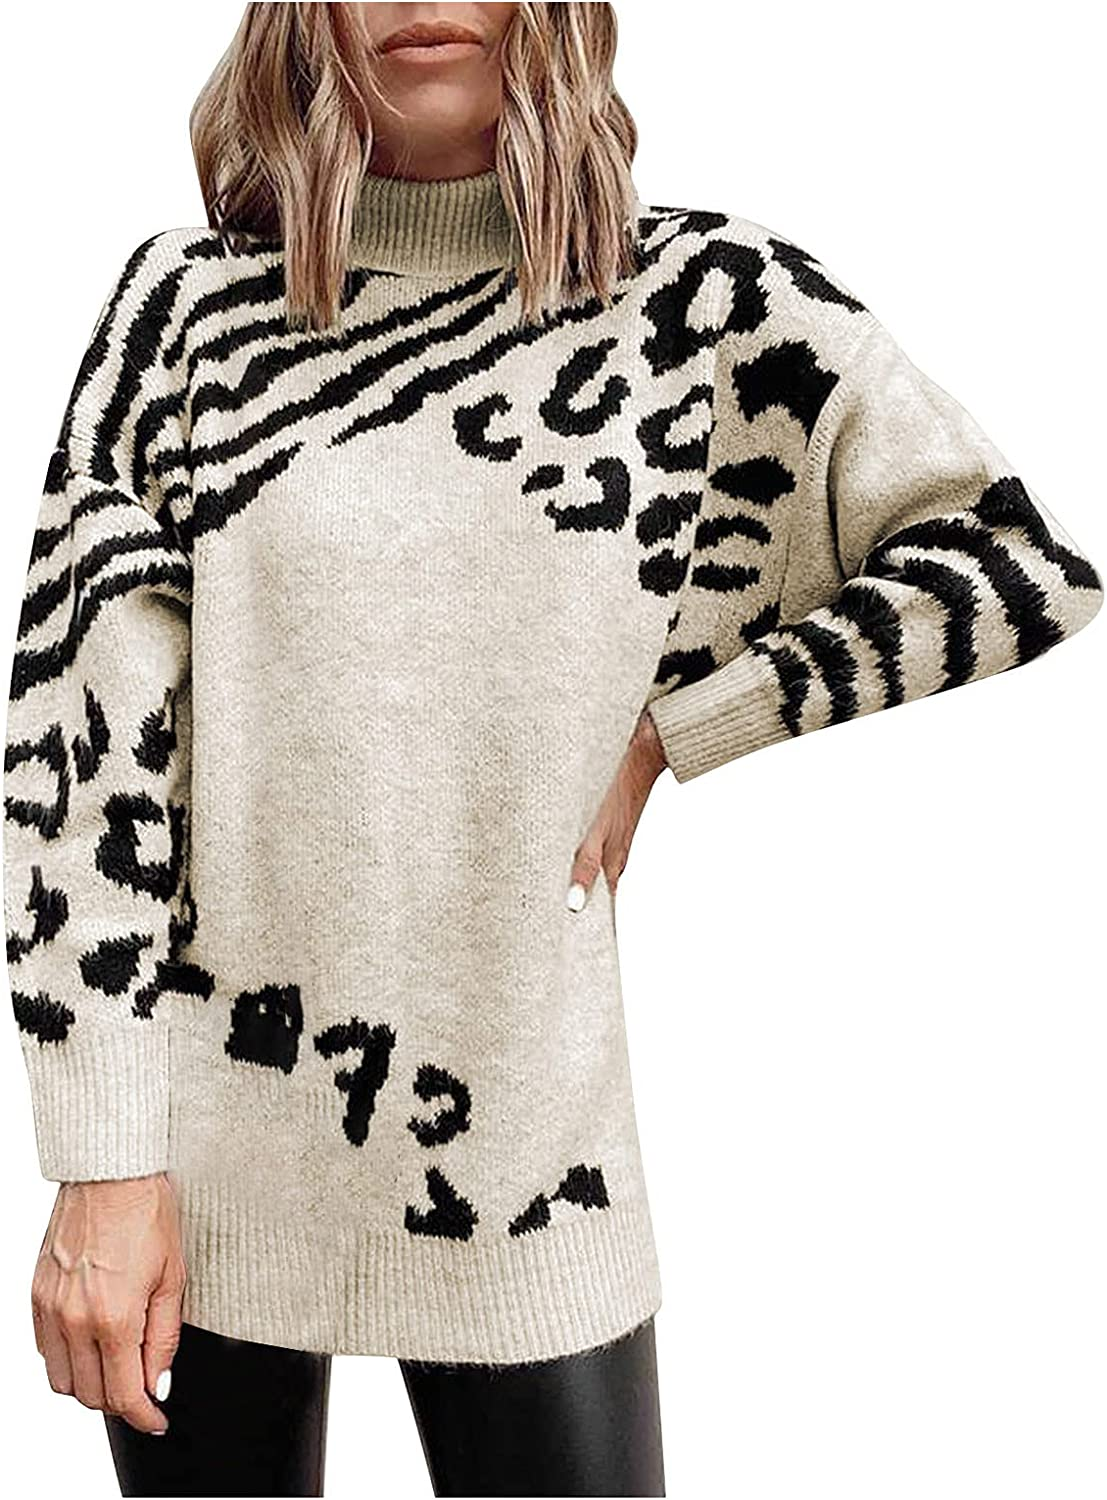 Women's Plush Fleece Long-Sleeved Turtleneck Leopard Sweater Fluffy Soft and Comfortable Pullover